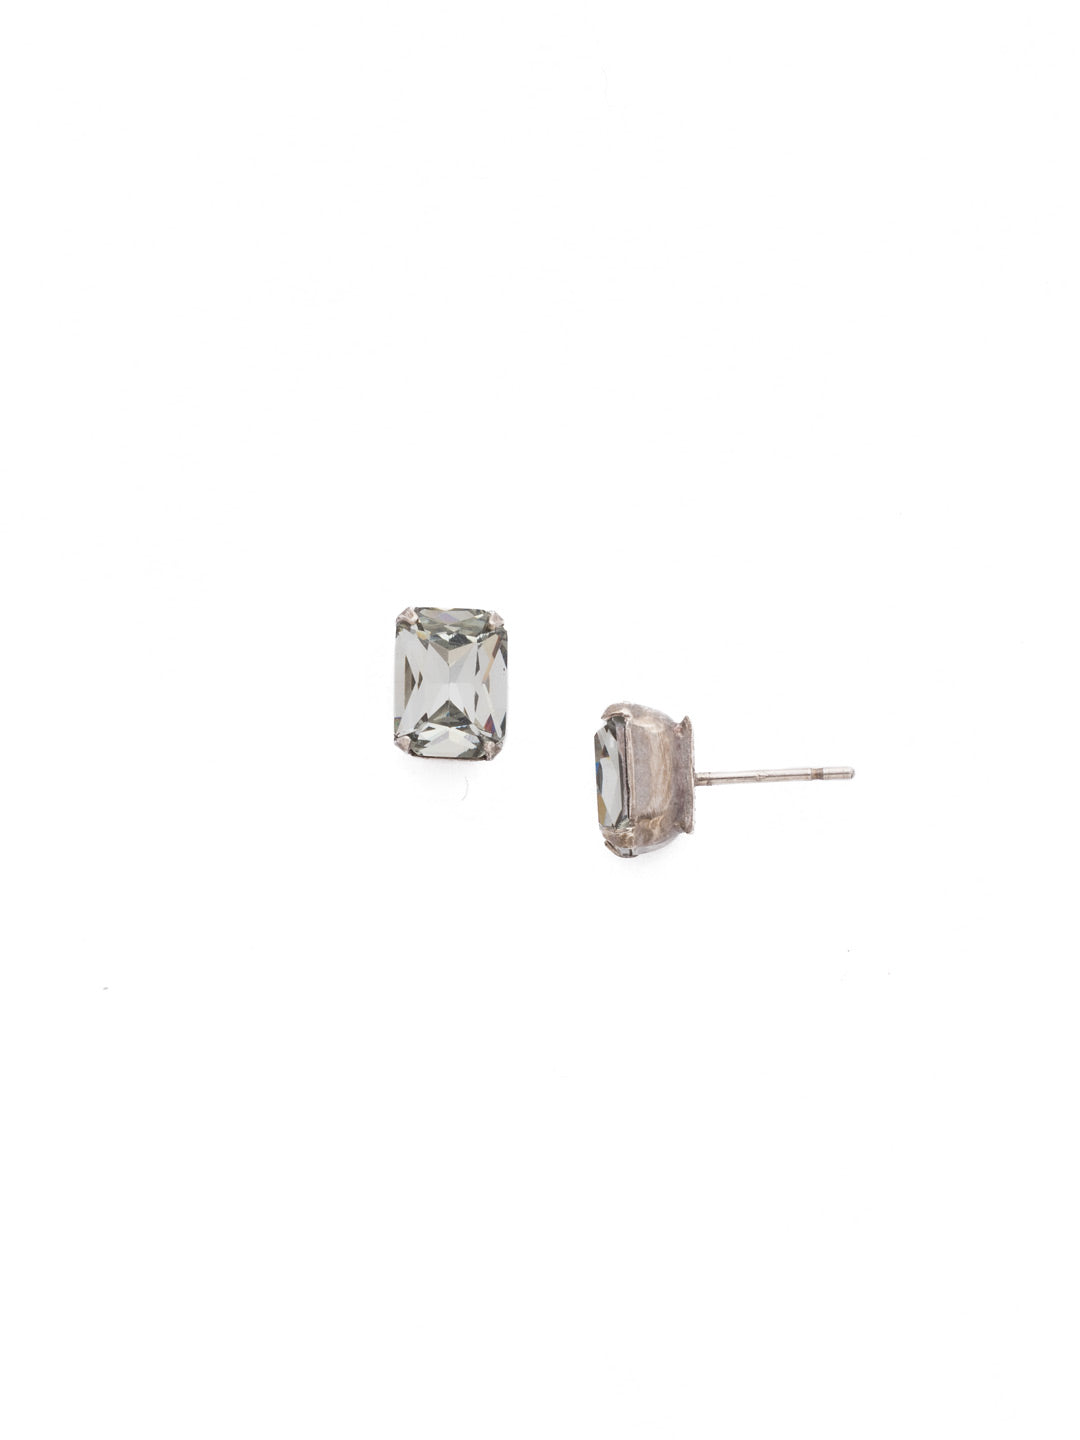 Mini Emerald Cut Stud Earrings - EBY42ASCRO